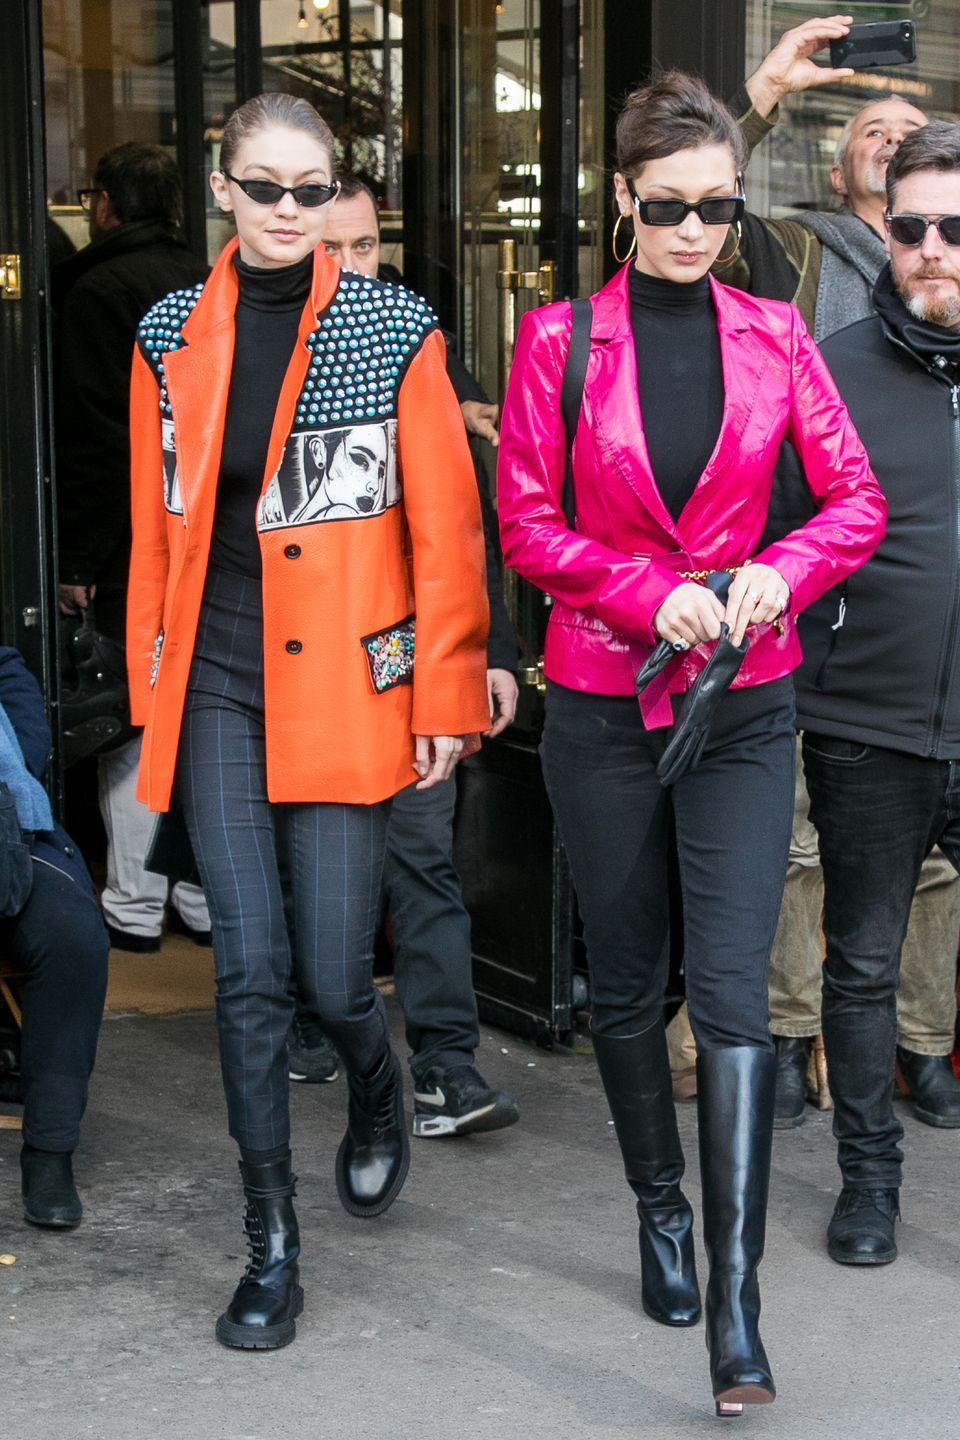 """<p>Gigi in a slightly-oversized orange leather jacket adorned with bright blue studs and comic motifs from Prada's Spring 2018 collection, paired with a simple black turtleneck, plaid pants, and side-laced combat boots.</p><p>Bella wearing a fitted magenta patent leather blazer by Georgine, cinched at the waist with a gold vintage Chanel chainlink belt from <a href=""""https://www.whatgoesaroundnyc.com/chanel-quilted-cc-chain-belt-q6a01m17db078.html"""" rel=""""nofollow noopener"""" target=""""_blank"""" data-ylk=""""slk:What Goes Around Comes Around"""" class=""""link rapid-noclick-resp"""">What Goes Around Comes Around</a>, a similar turtleneck, black pants, and knee-high boots while out in Paris.</p>"""